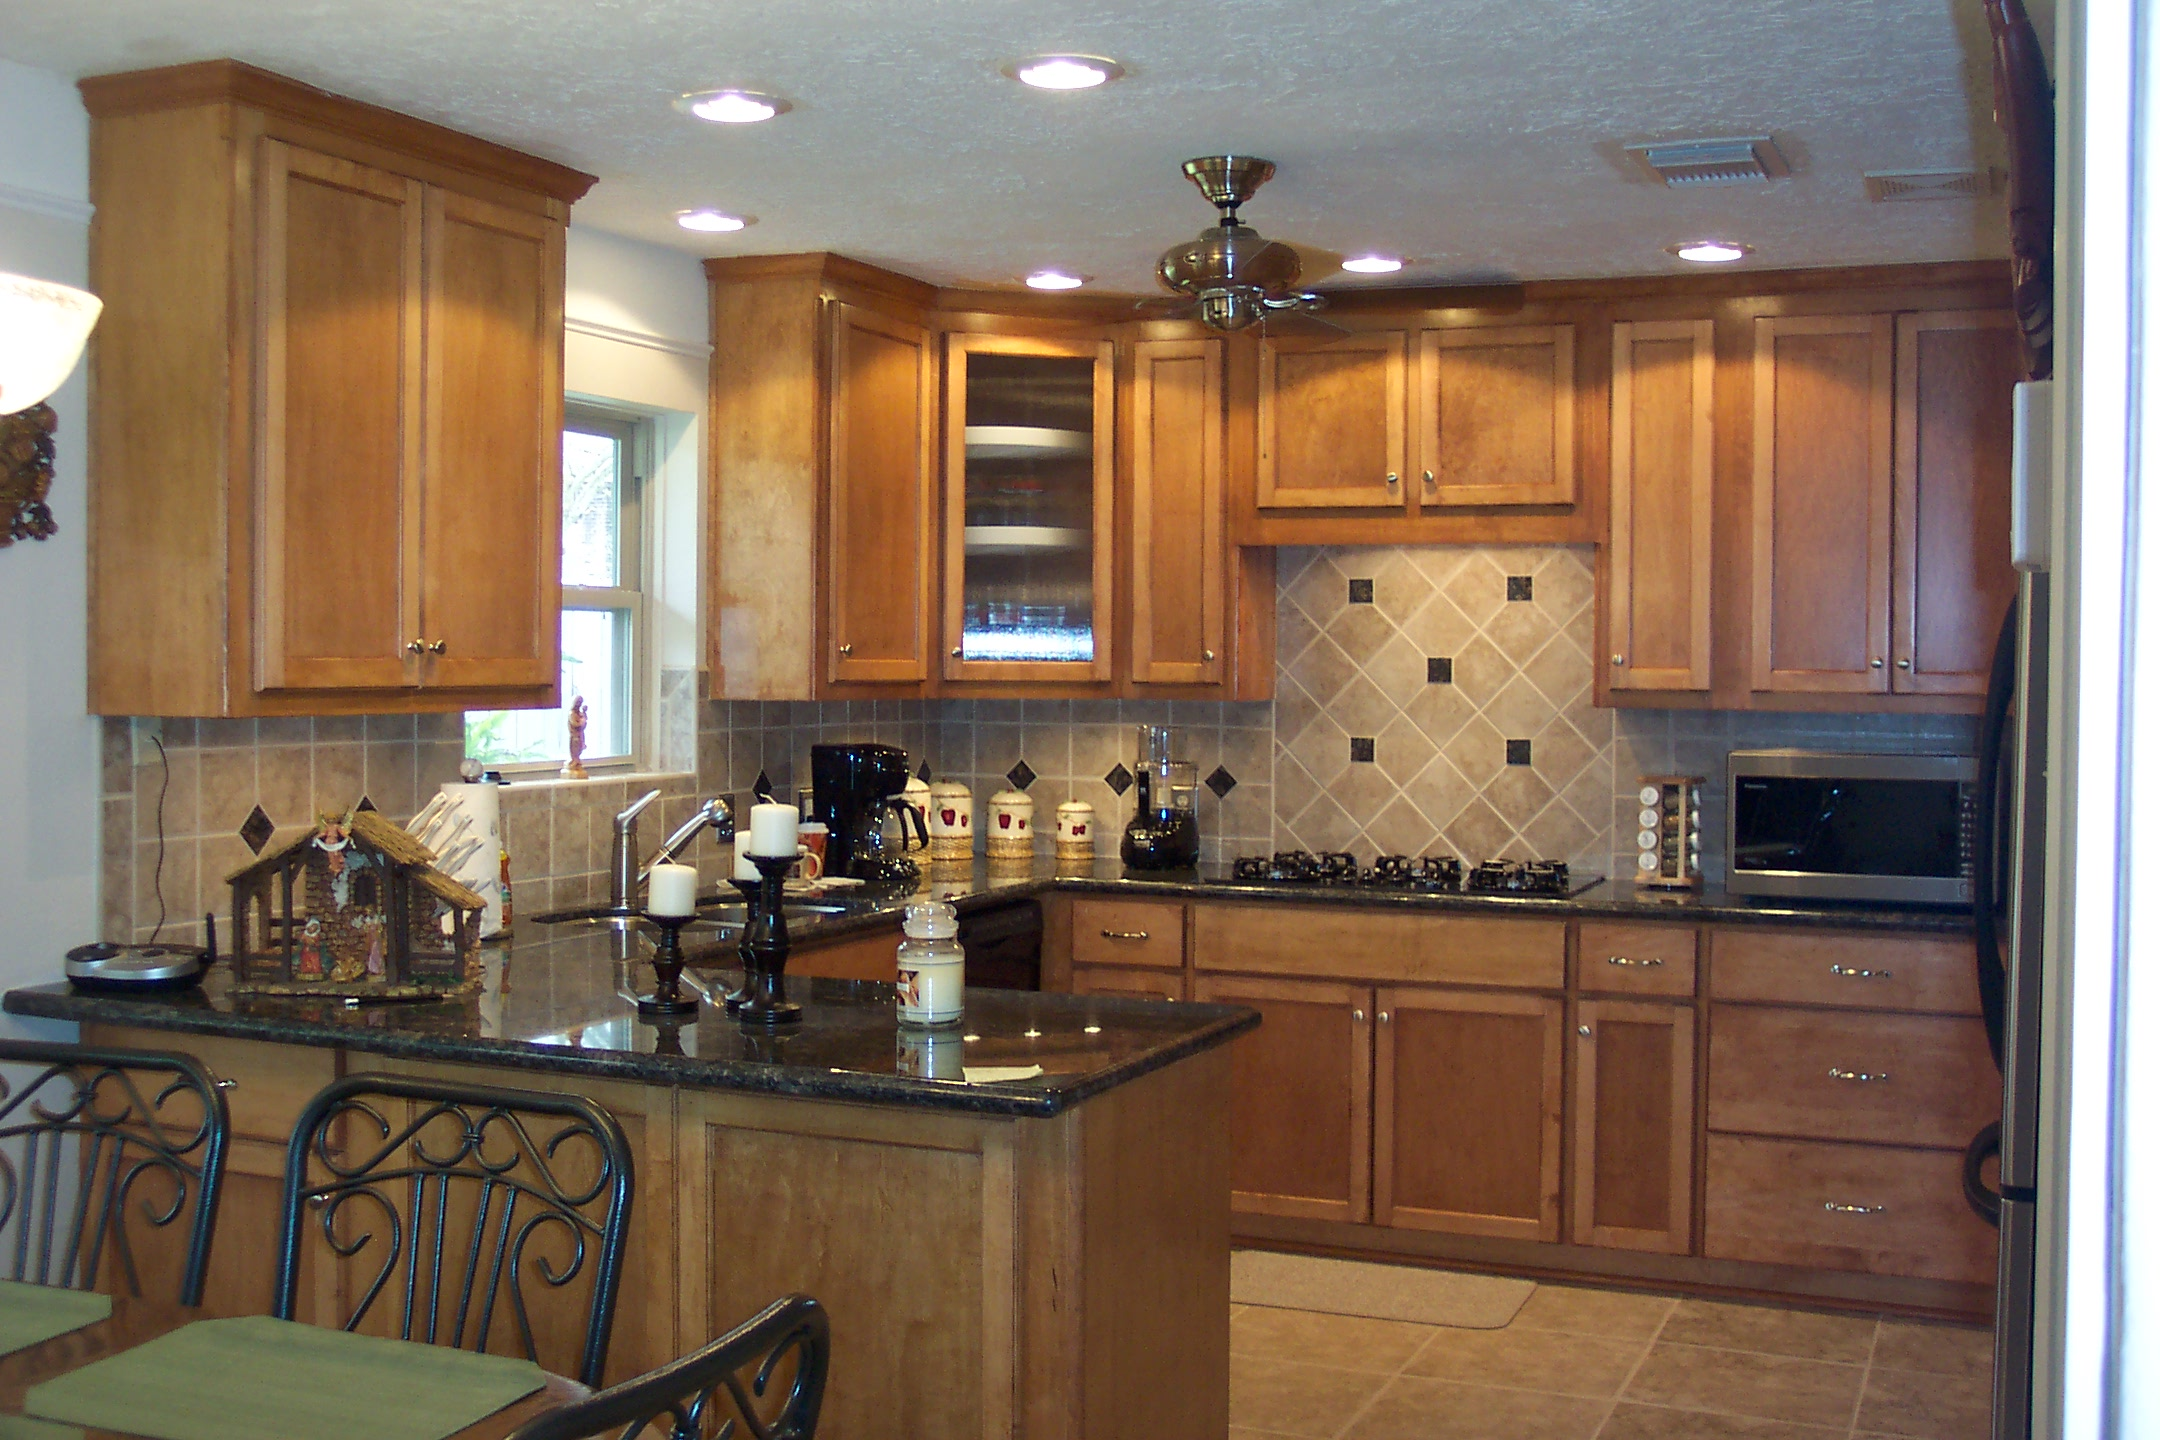 Remodeling Shaped Kitchen Kitchen Design Ideas ~ Kitchen remodeling ideas pictures photos